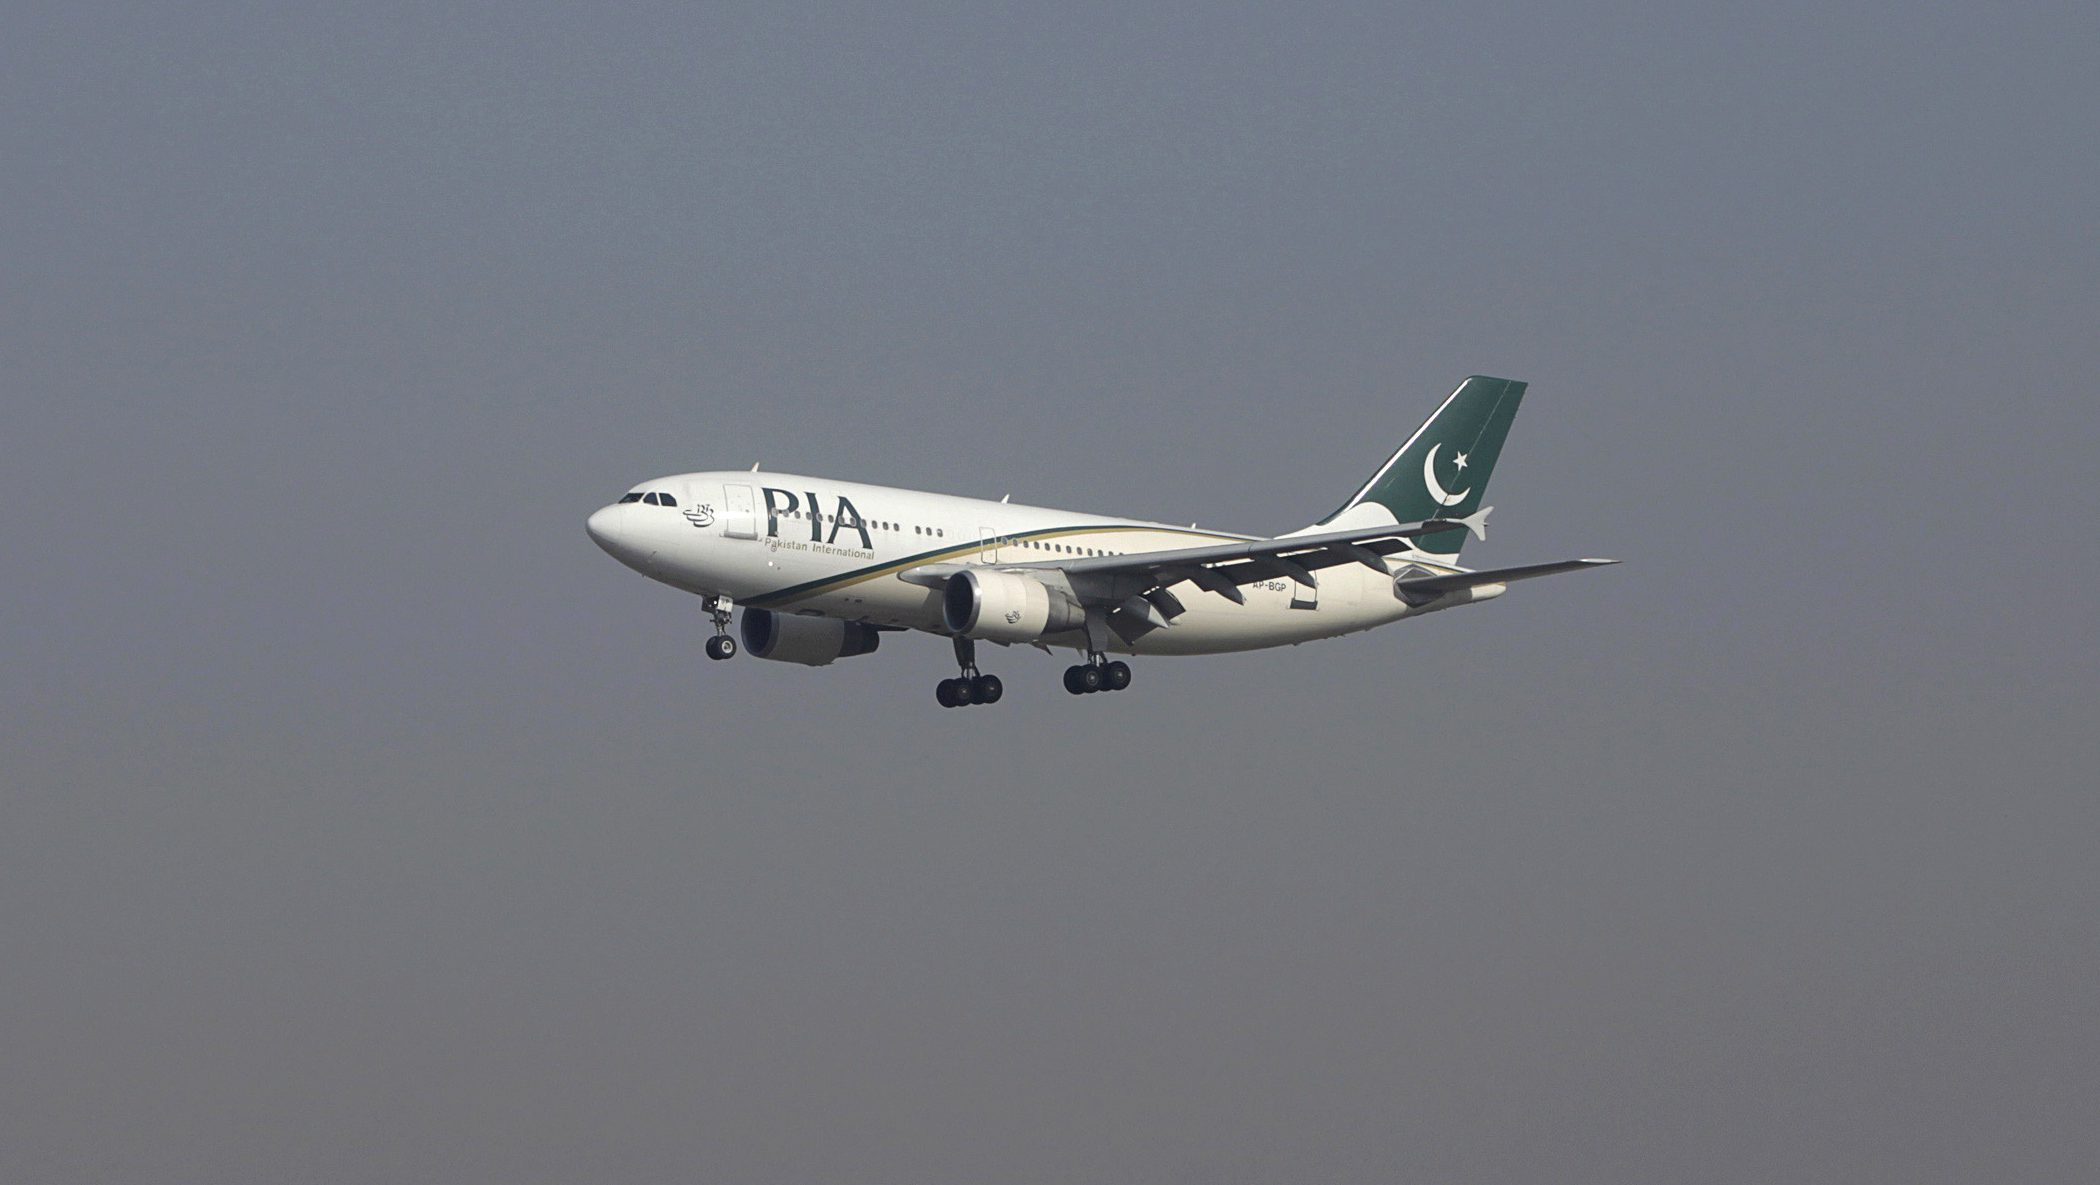 FILE PHOTO - A Pakistan International Airlines (PIA) passenger plane arrives at the Benazir International airport in Islamabad, Pakistan December 2, 2015.